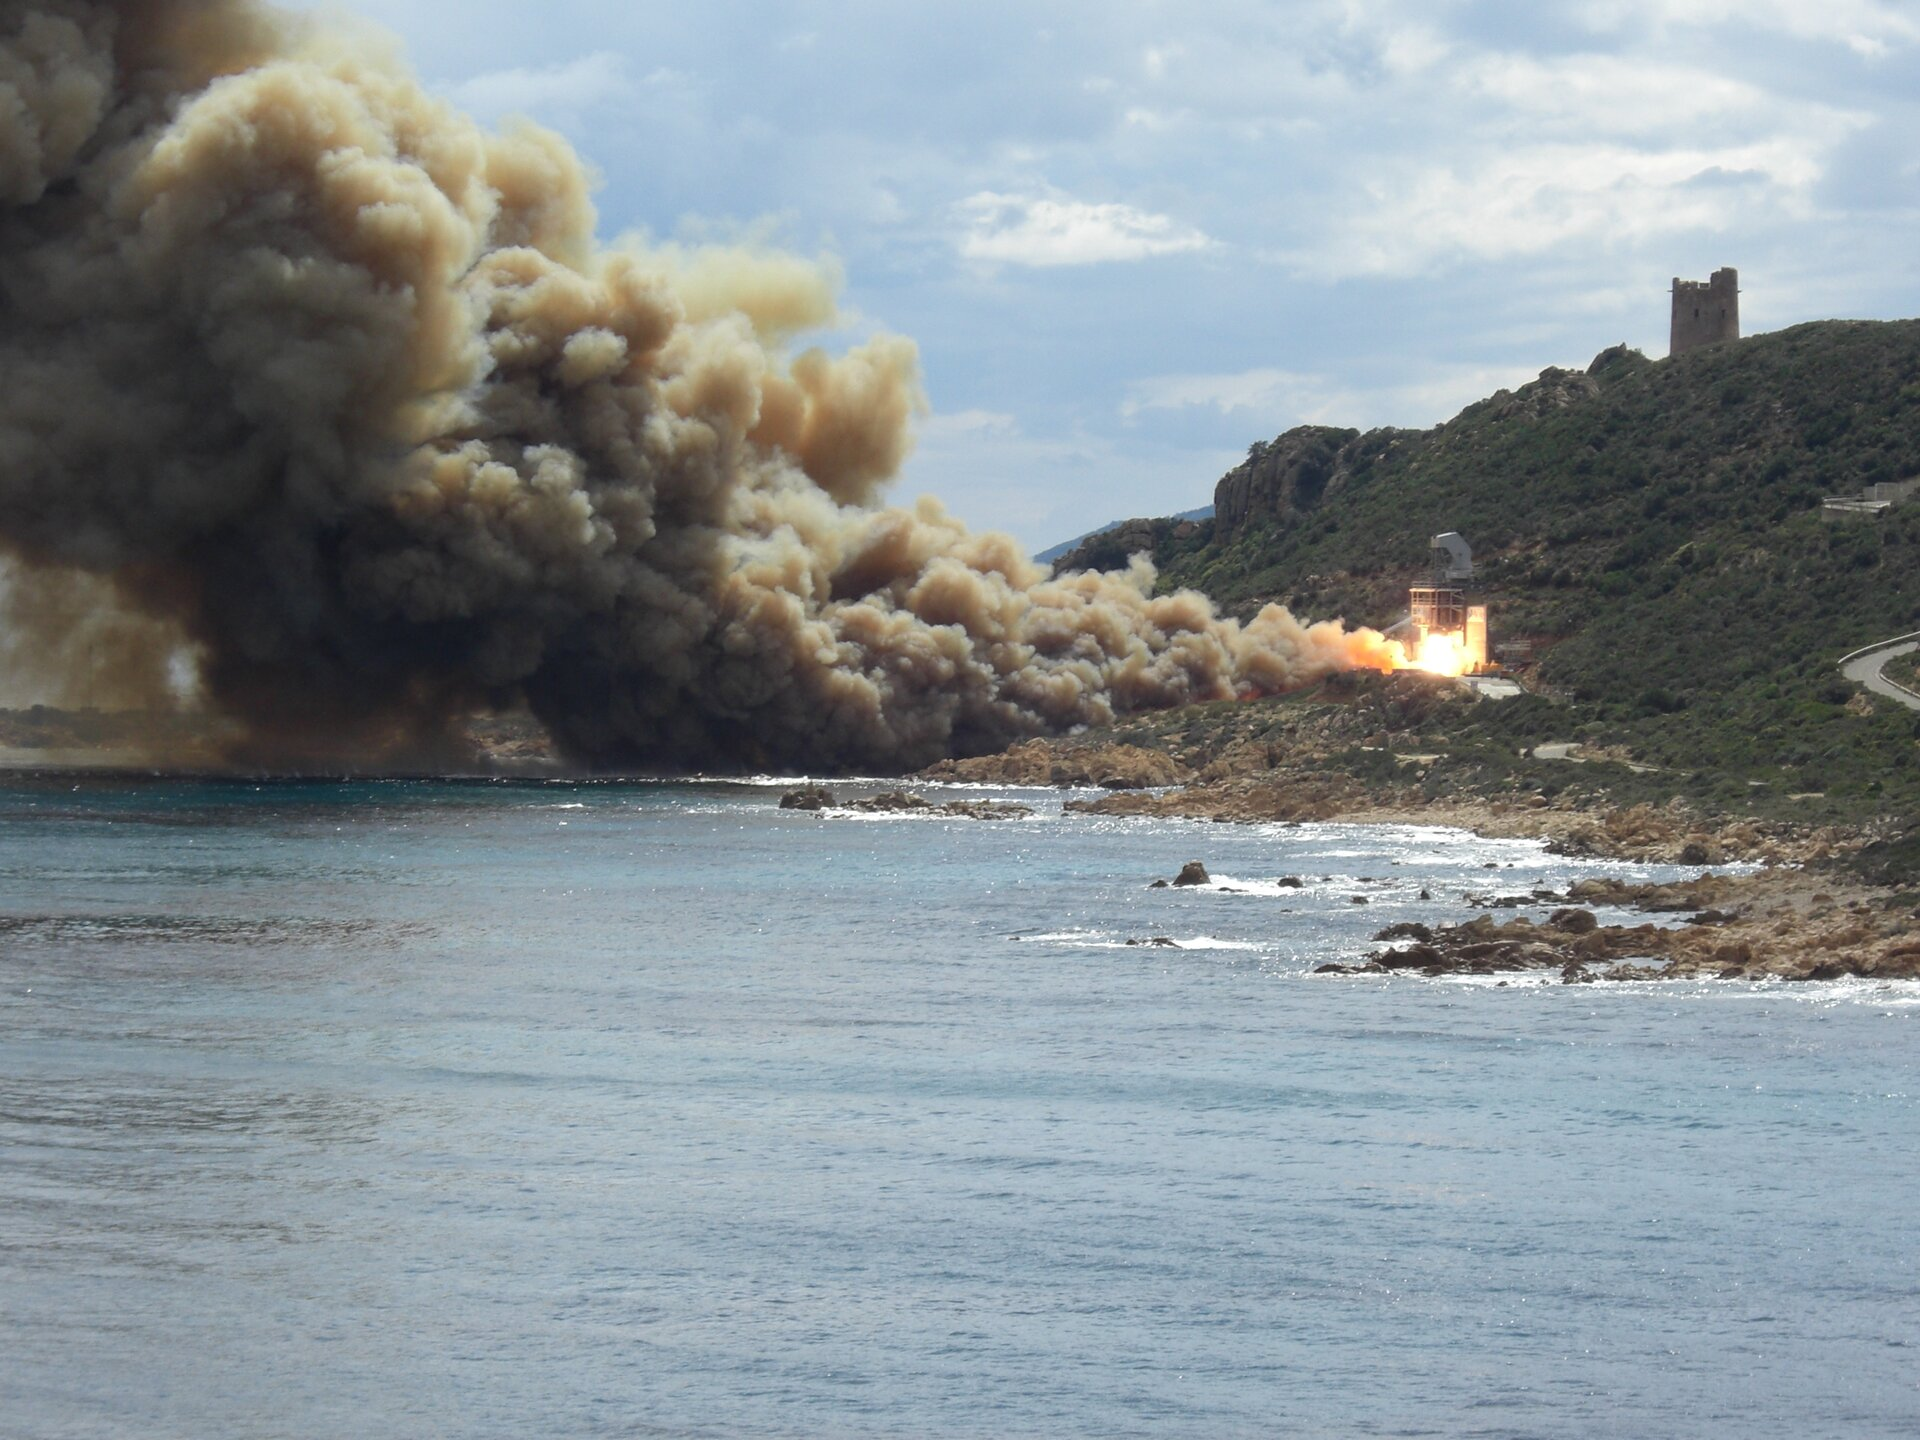 Vega second stage firing test